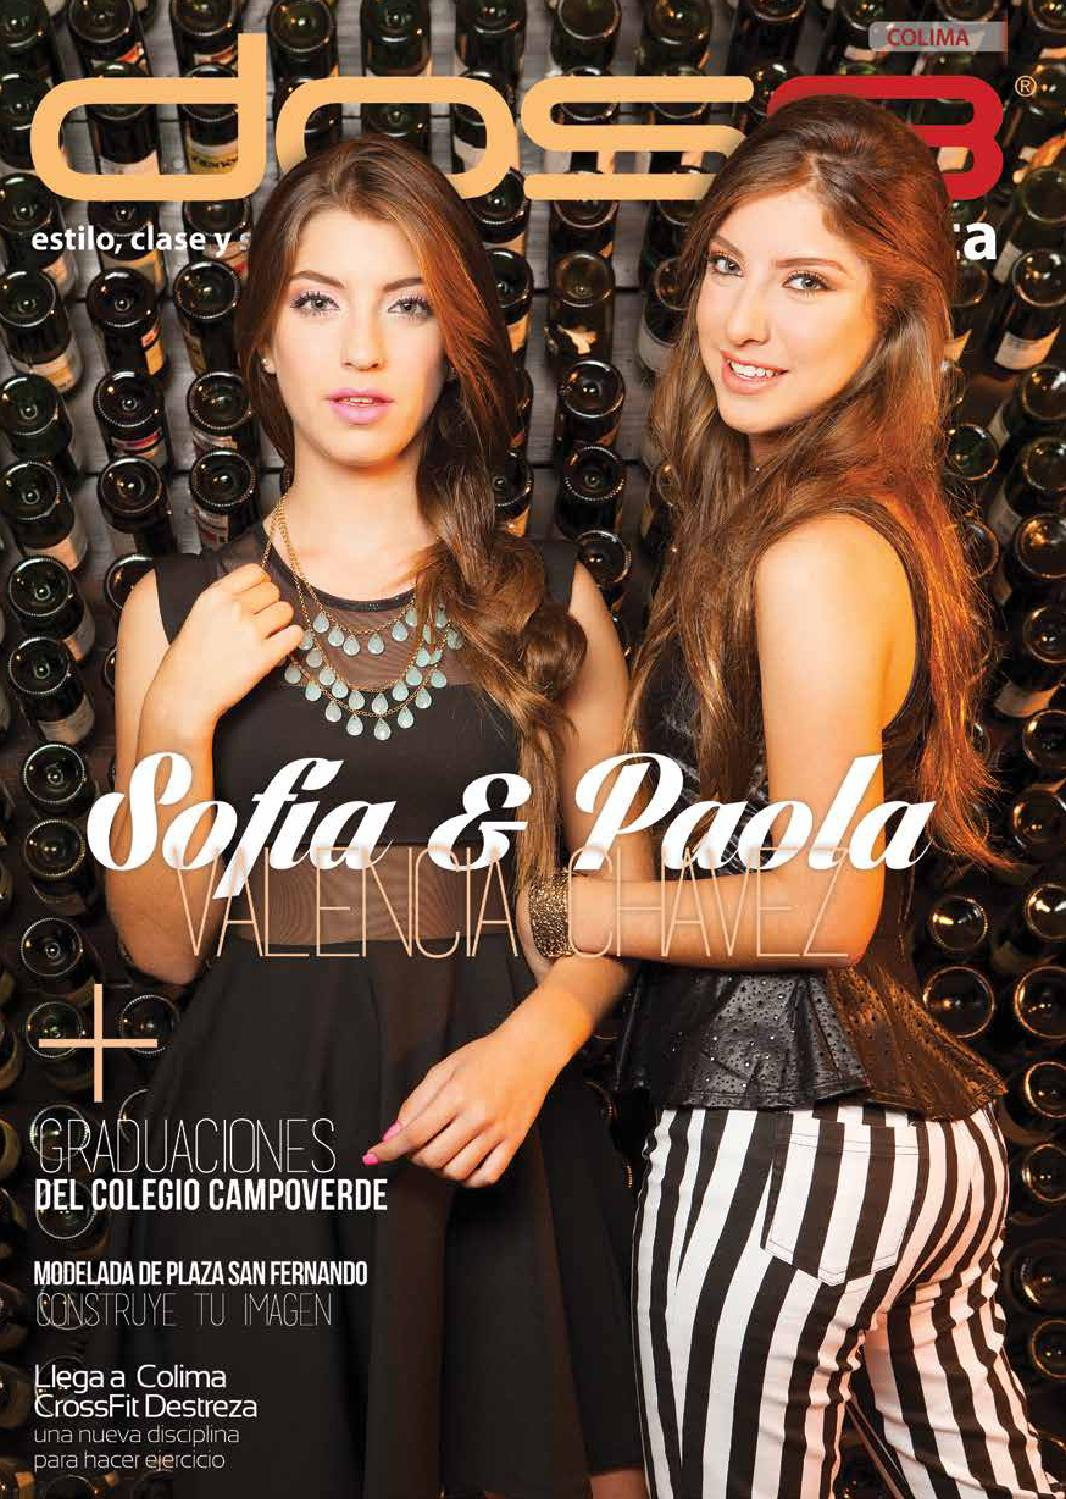 Revista dos8 101 by Revista dos8 - issuu